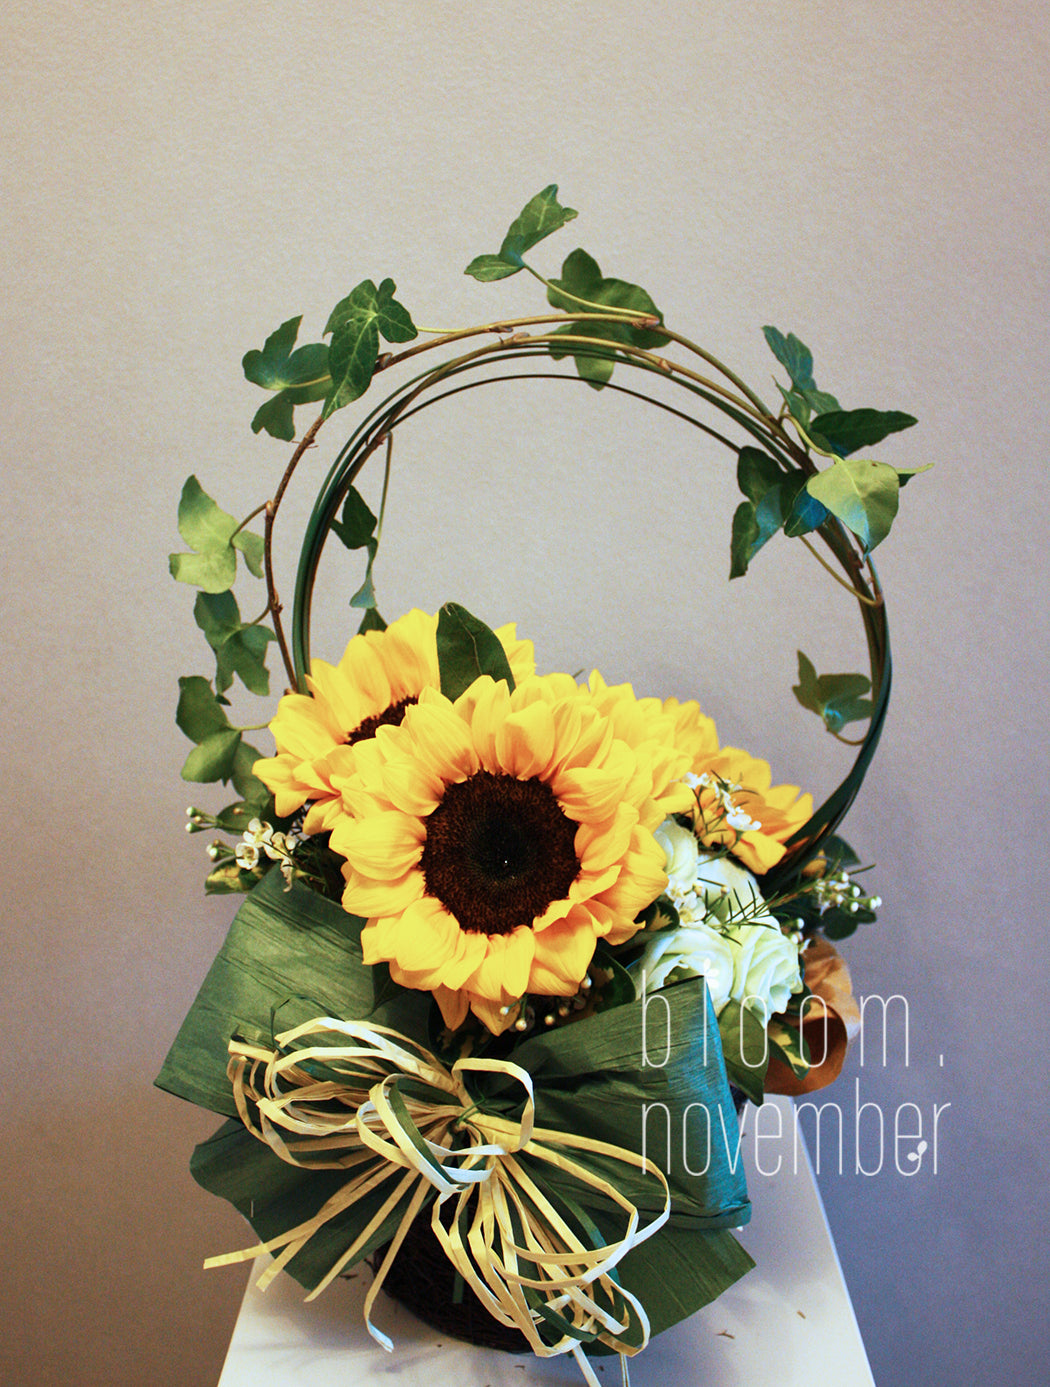 bouquet flower bloom november